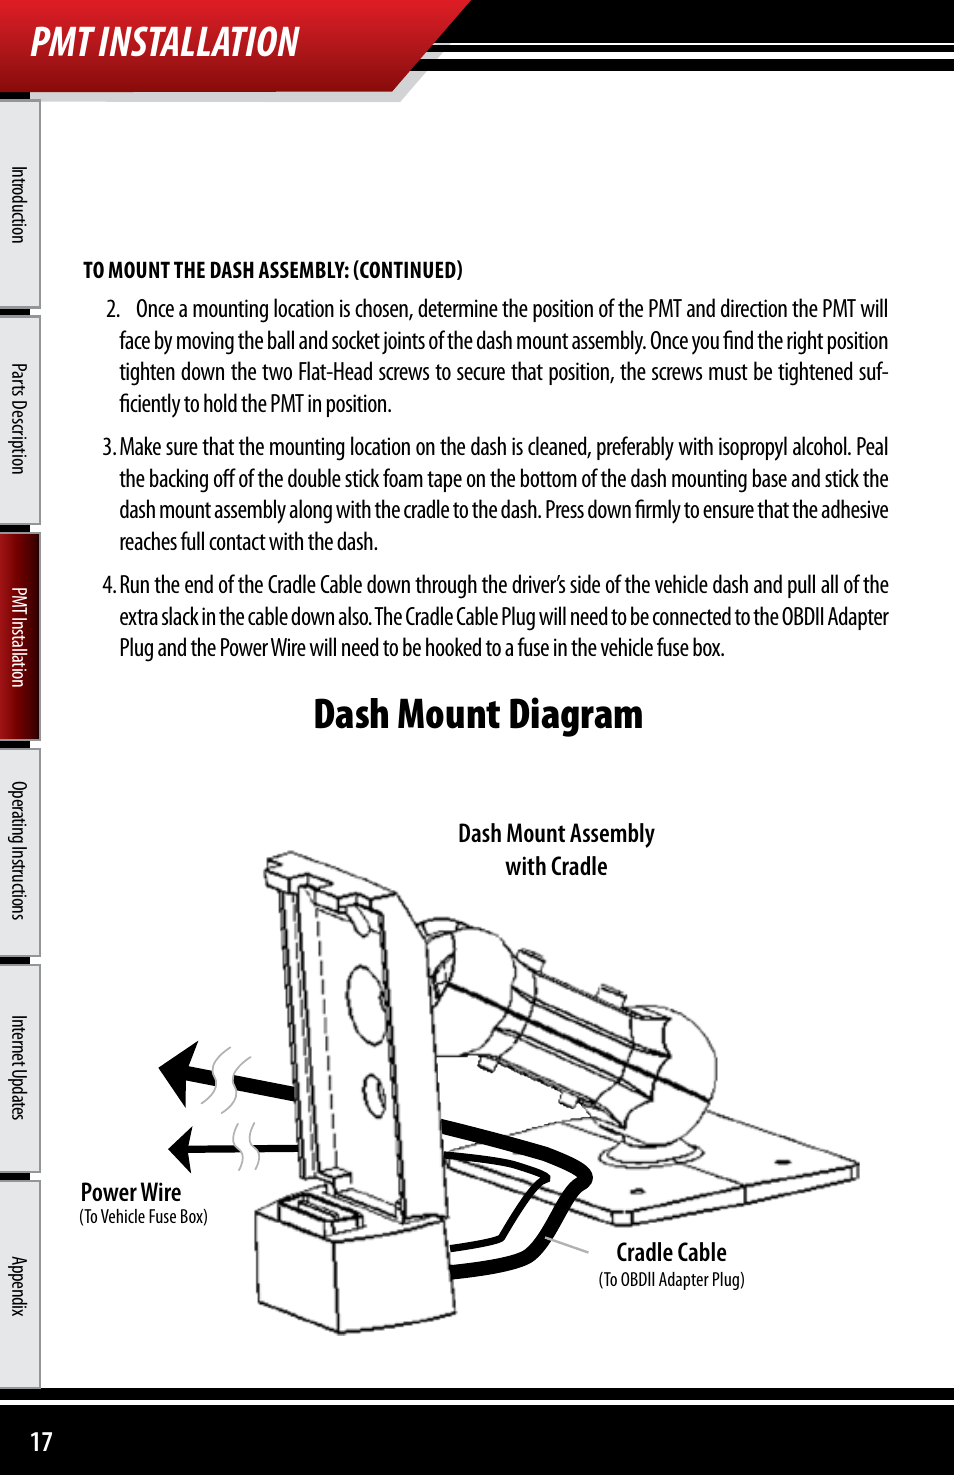 Pmt Installation Dash Mount Diagram Assembly With Fuse Box Cartoon Cradle Cable Bully Dog 40300 Advanced Vehicle Downloader Controller